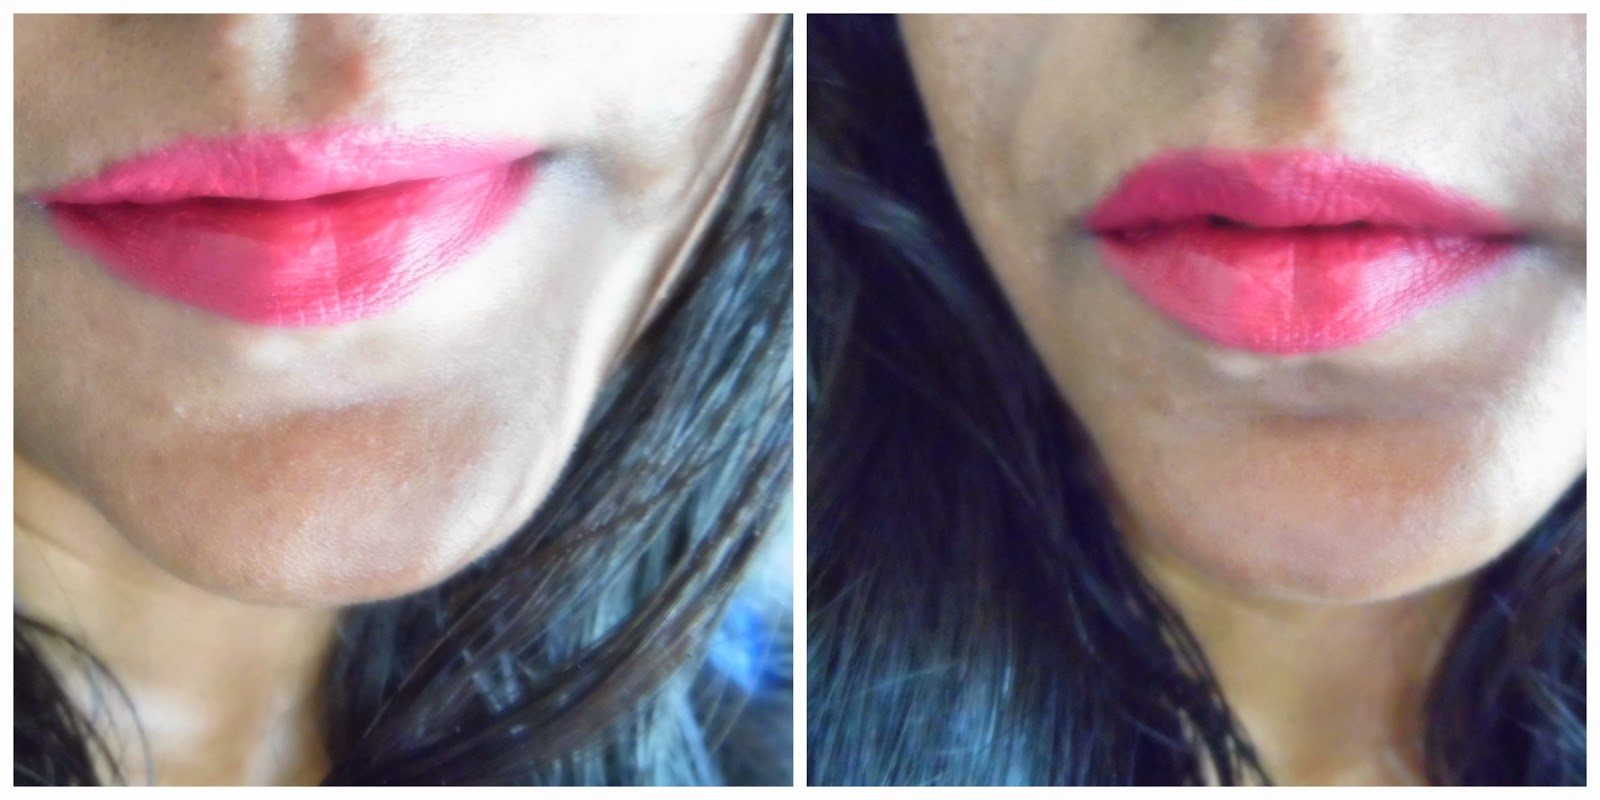 bright pink lipsticks